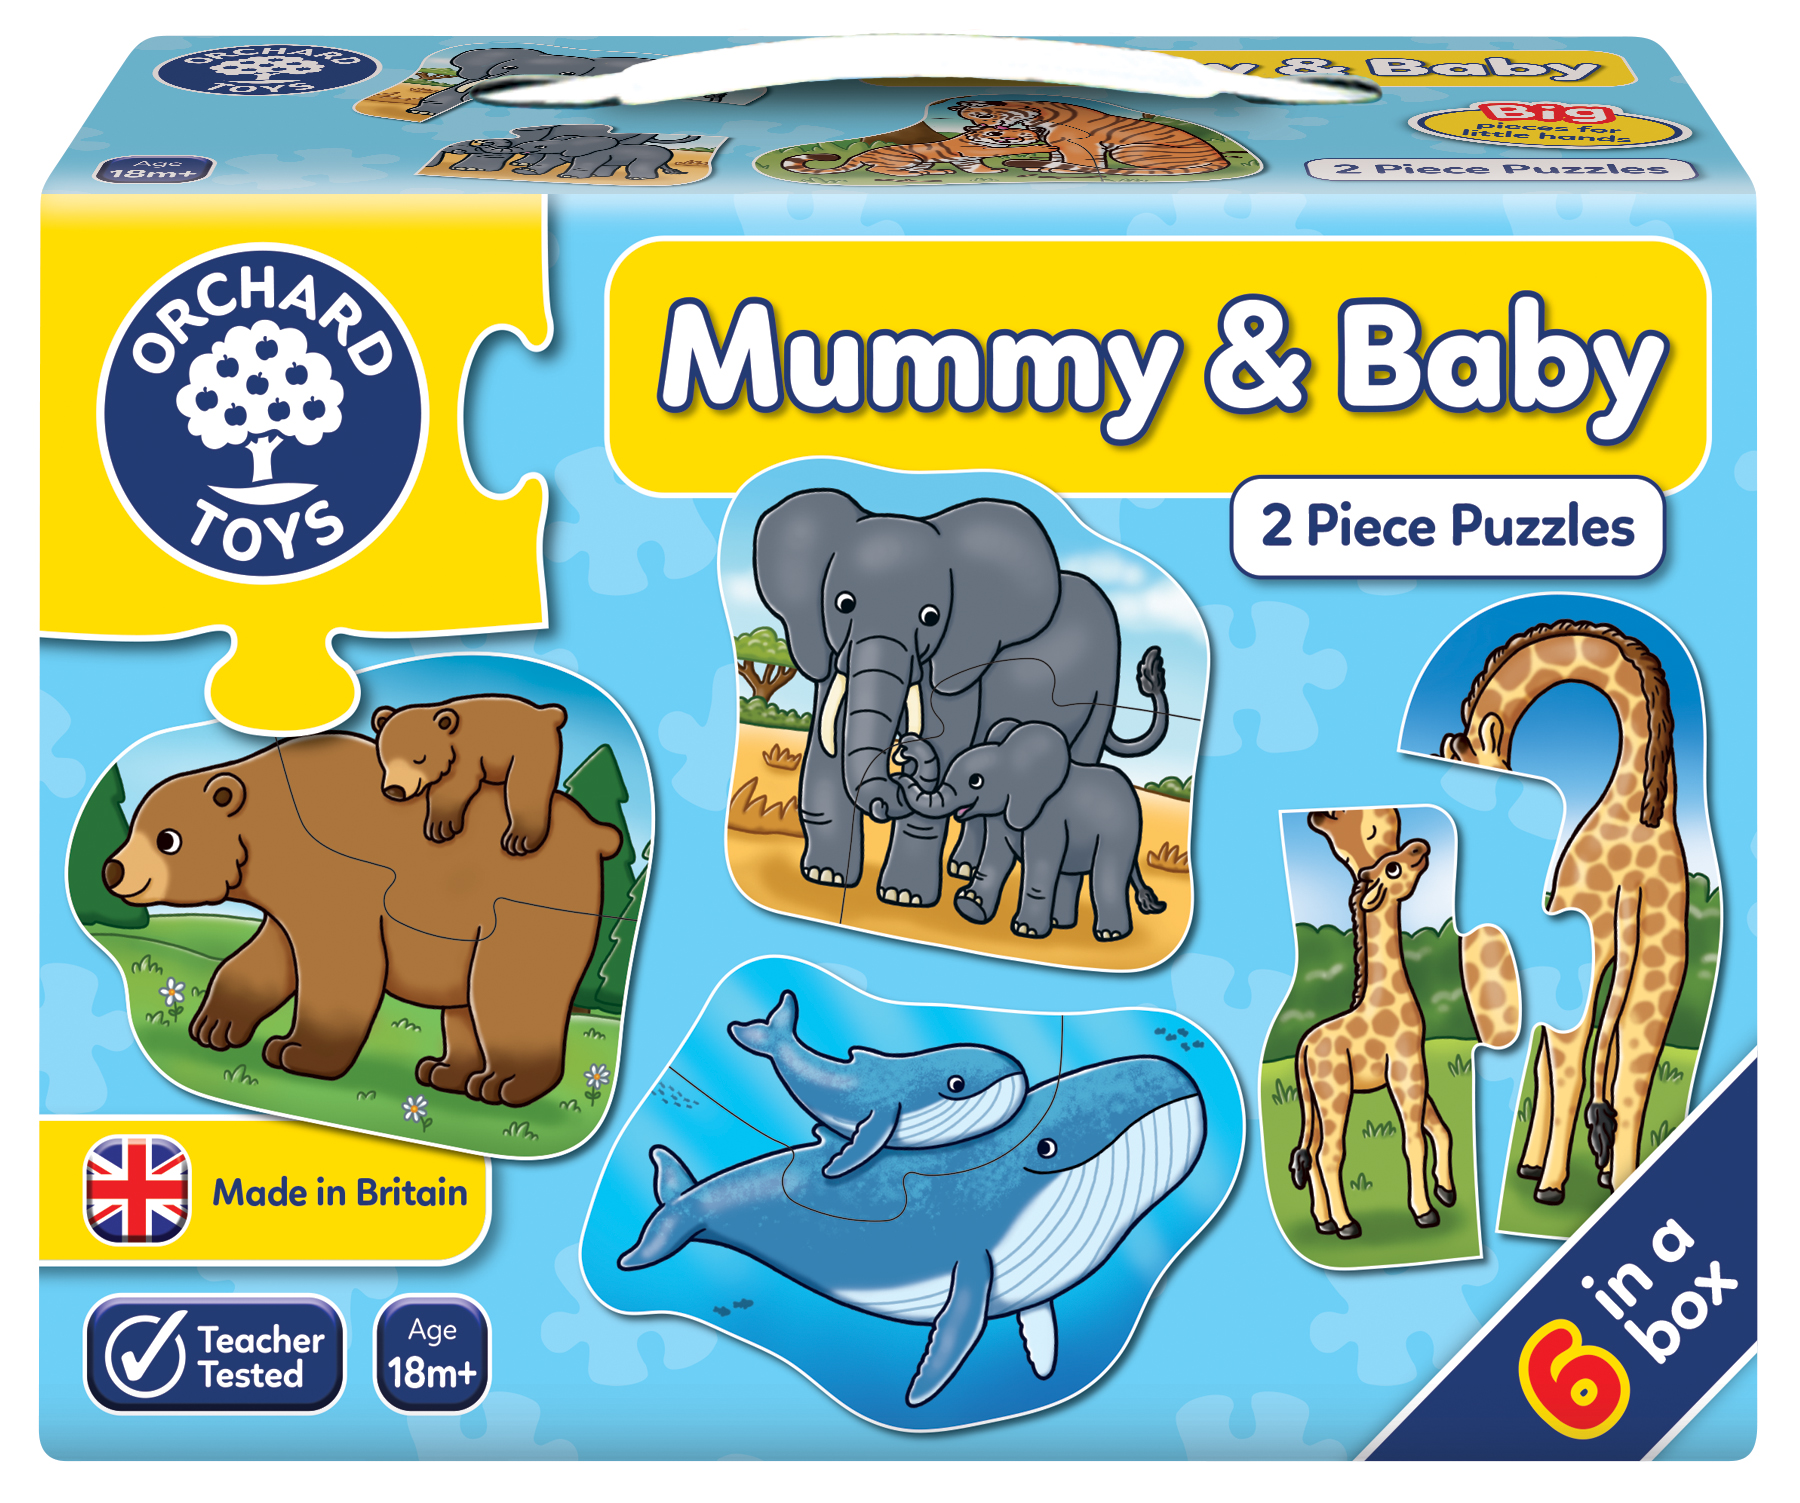 Orchard Toys Mummy And Baby 2 Piece Puzzles